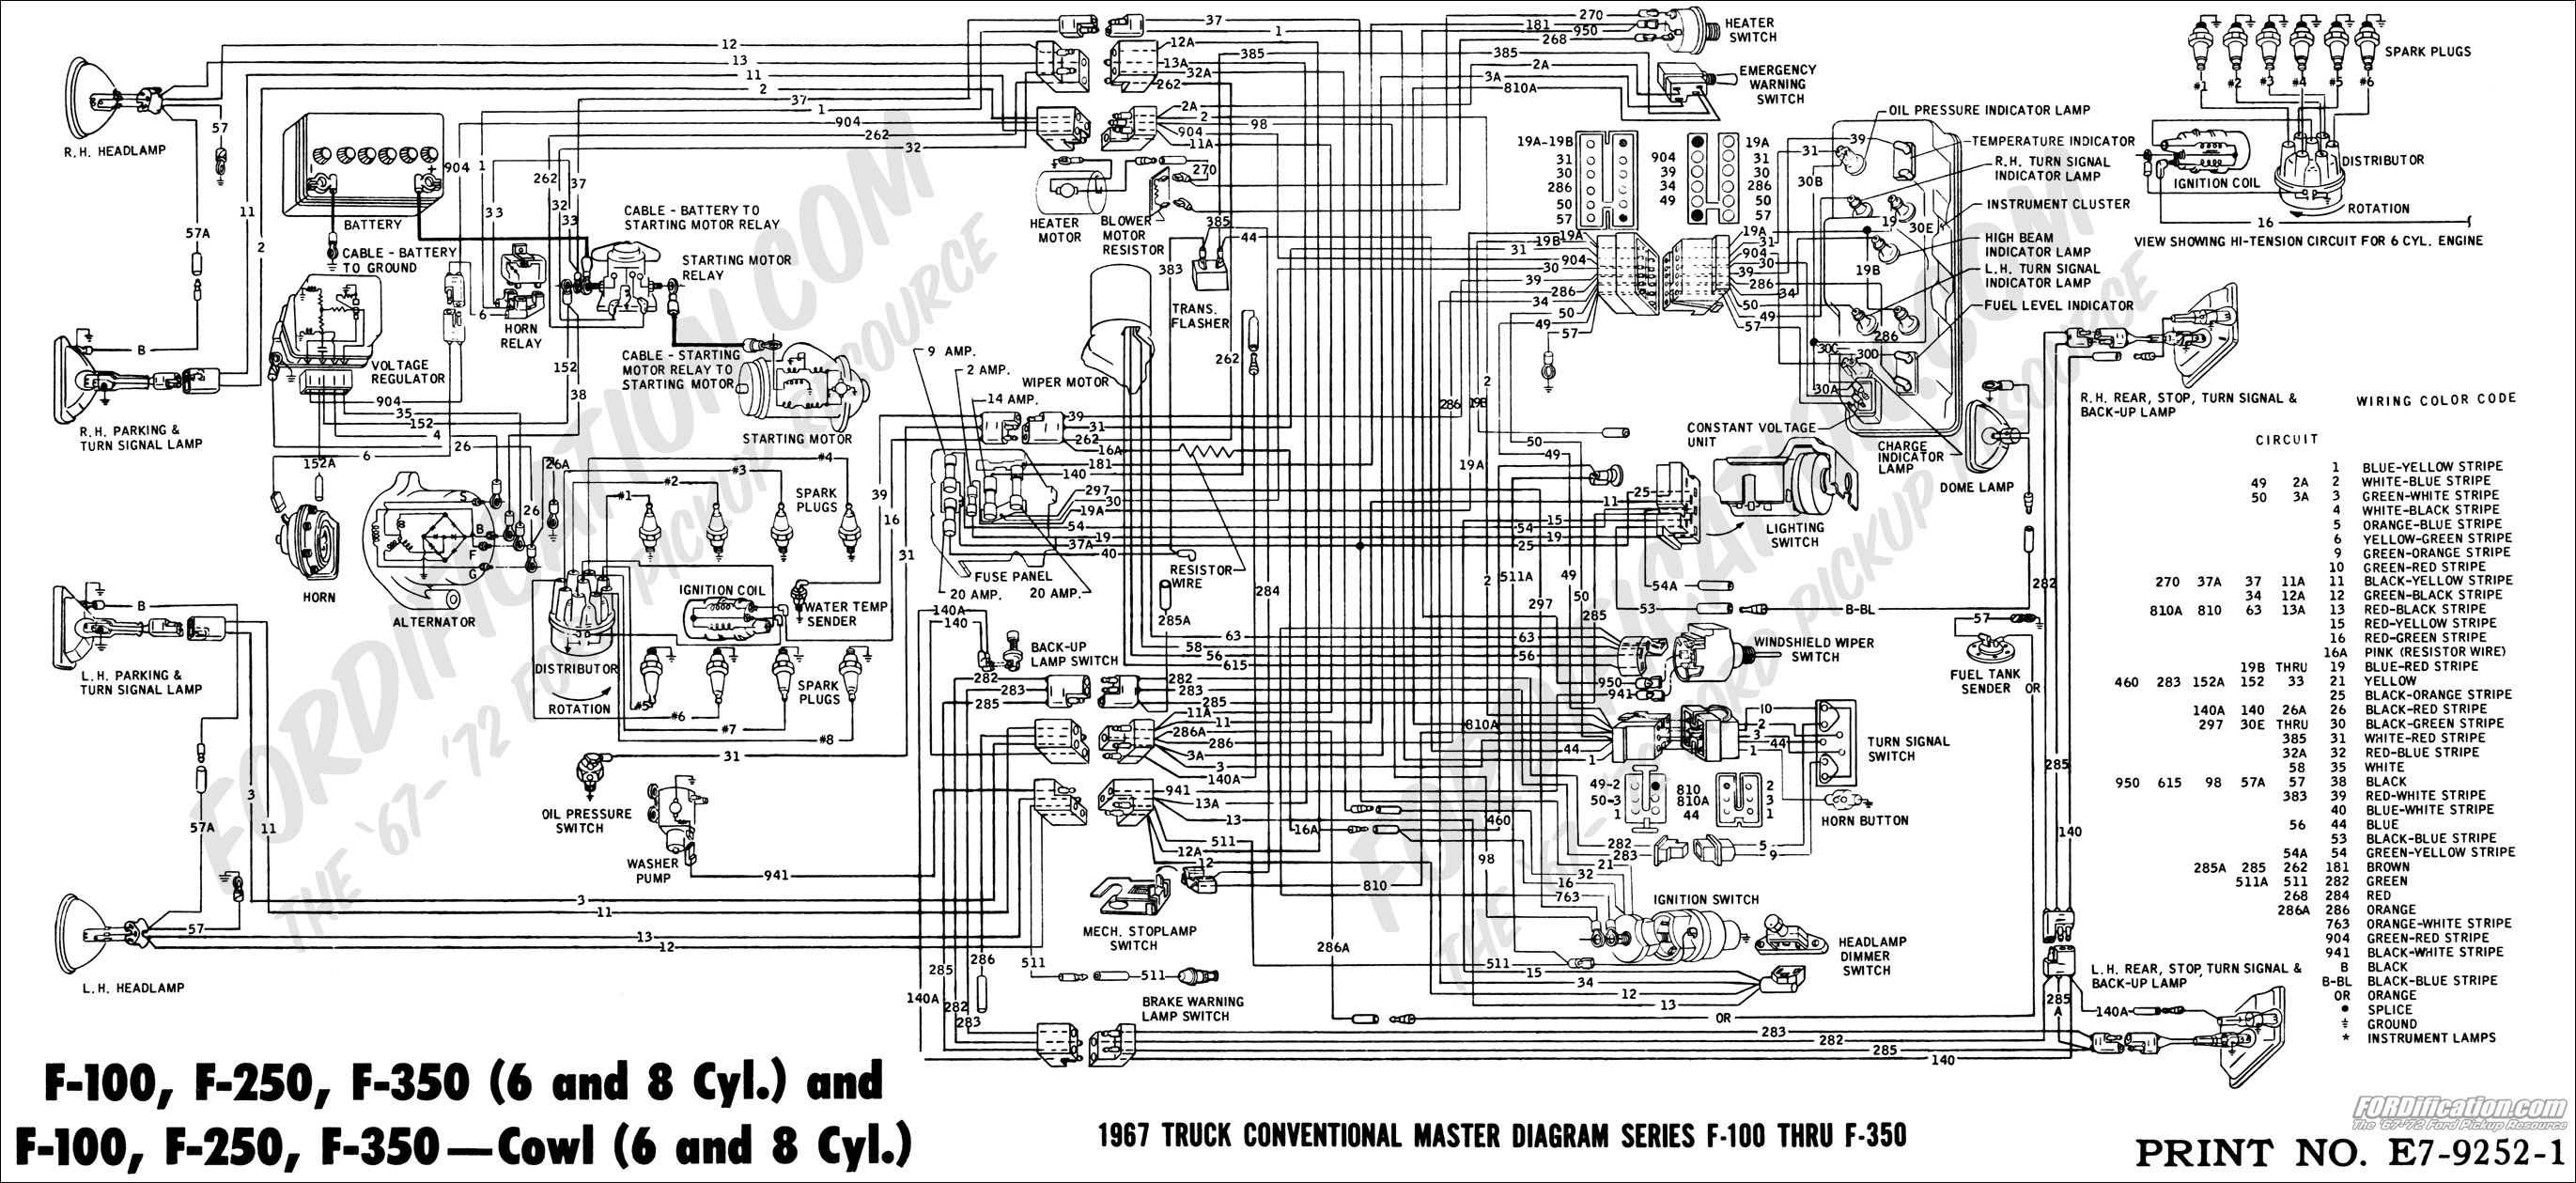 1989 ford wiring diagram wiring diagram third level1989 ford f600 wiring diagram simple wiring diagram 1989 ford xlt wiring diagram 1989 ford